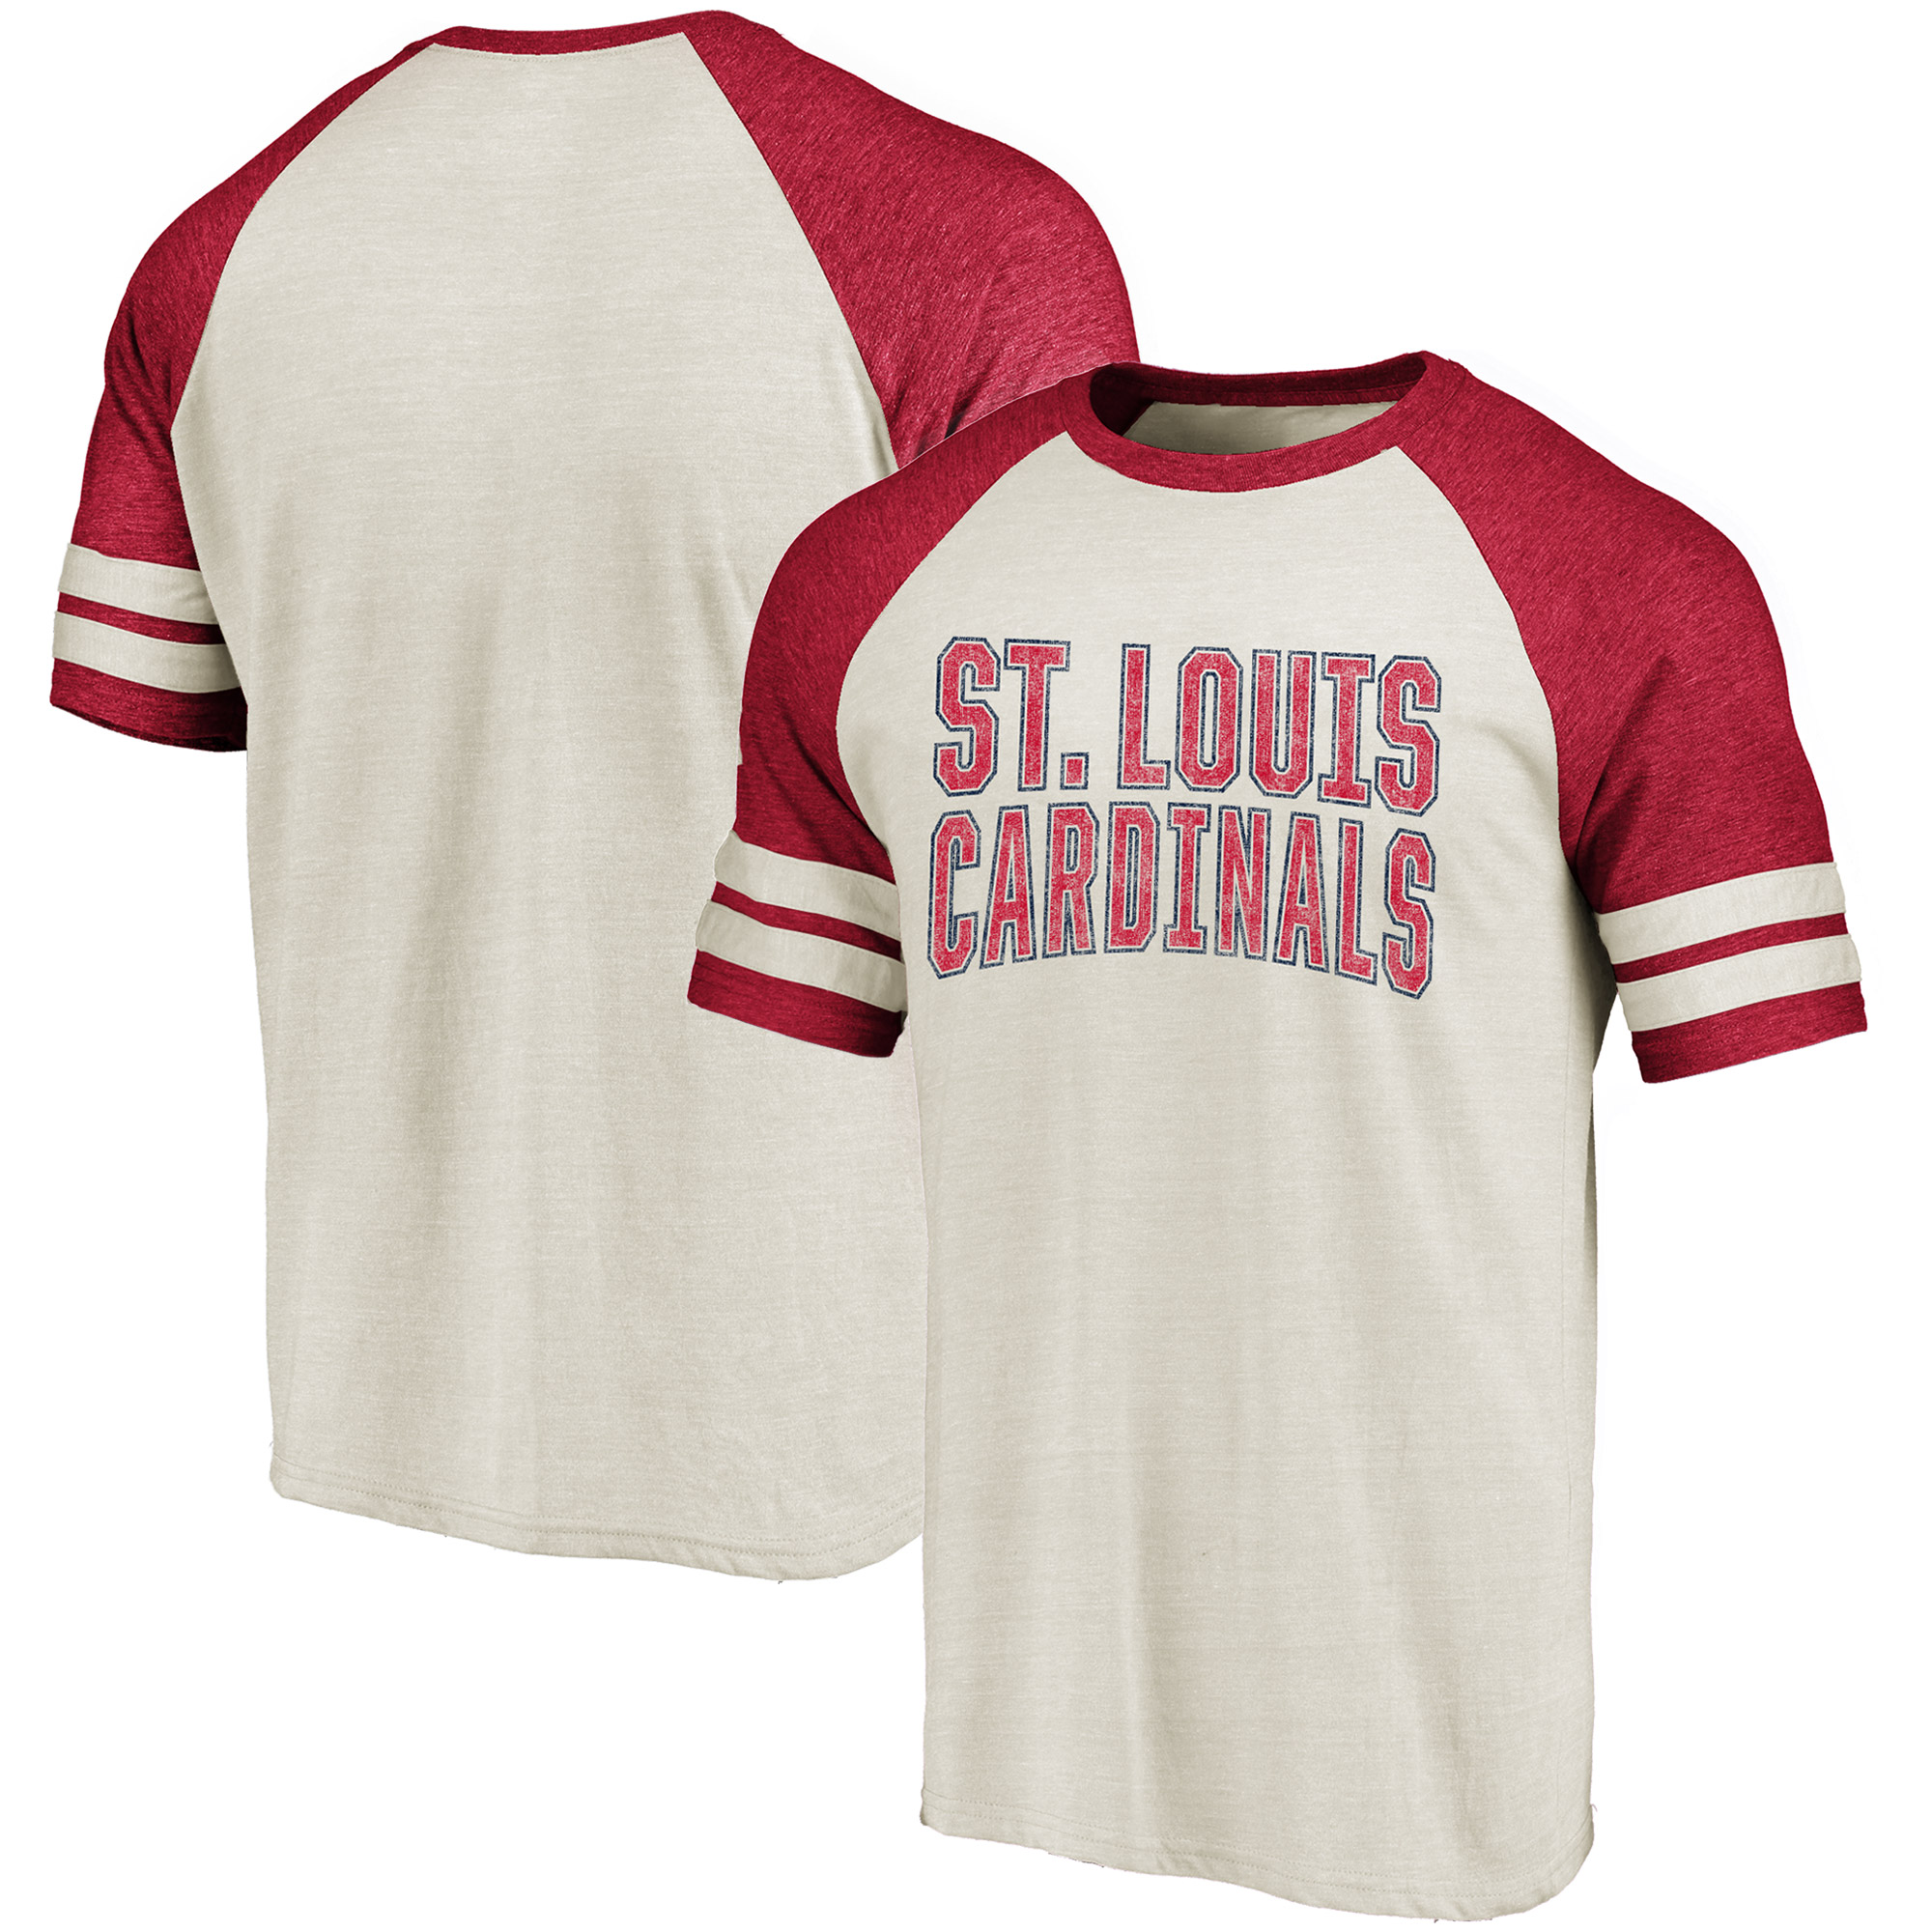 St. Louis Cardinals Fanatics Branded True Classics Colorblock Raglan T-Shirt - Cream/Red